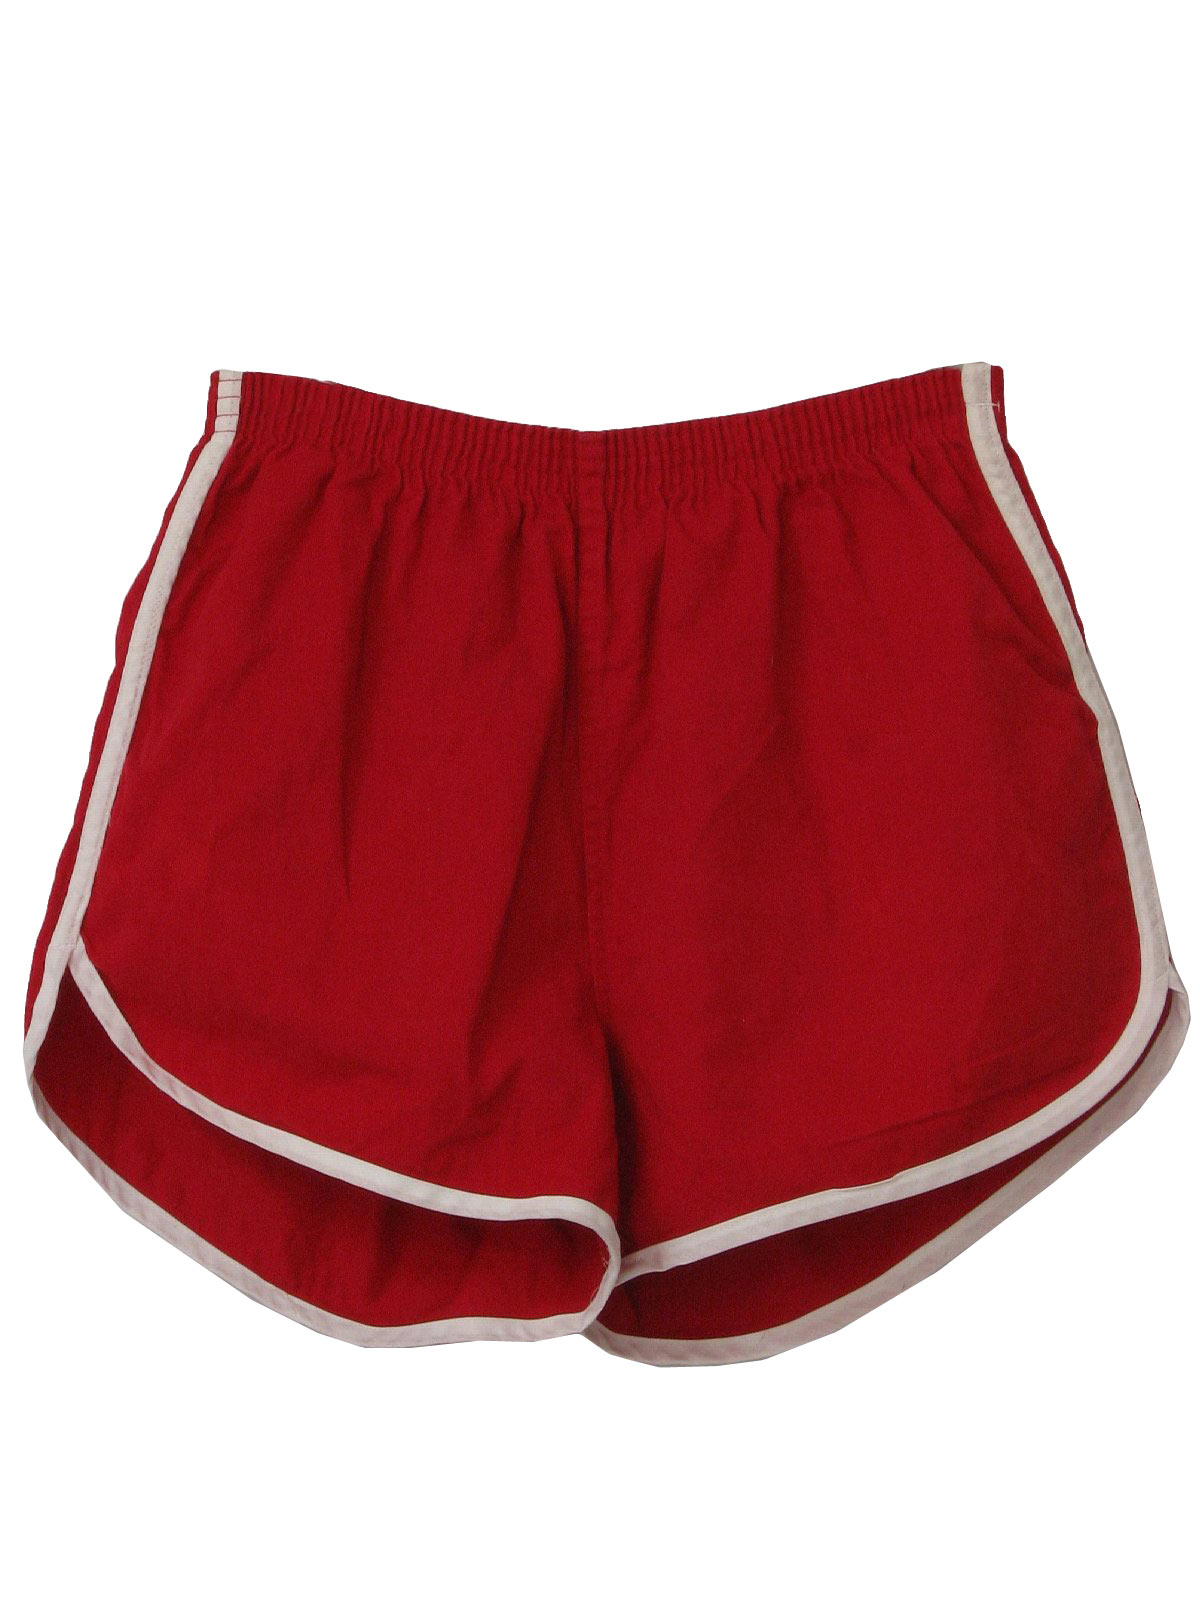 Retro 80 S Shorts 80s Abco Mens Red And White Side Seam